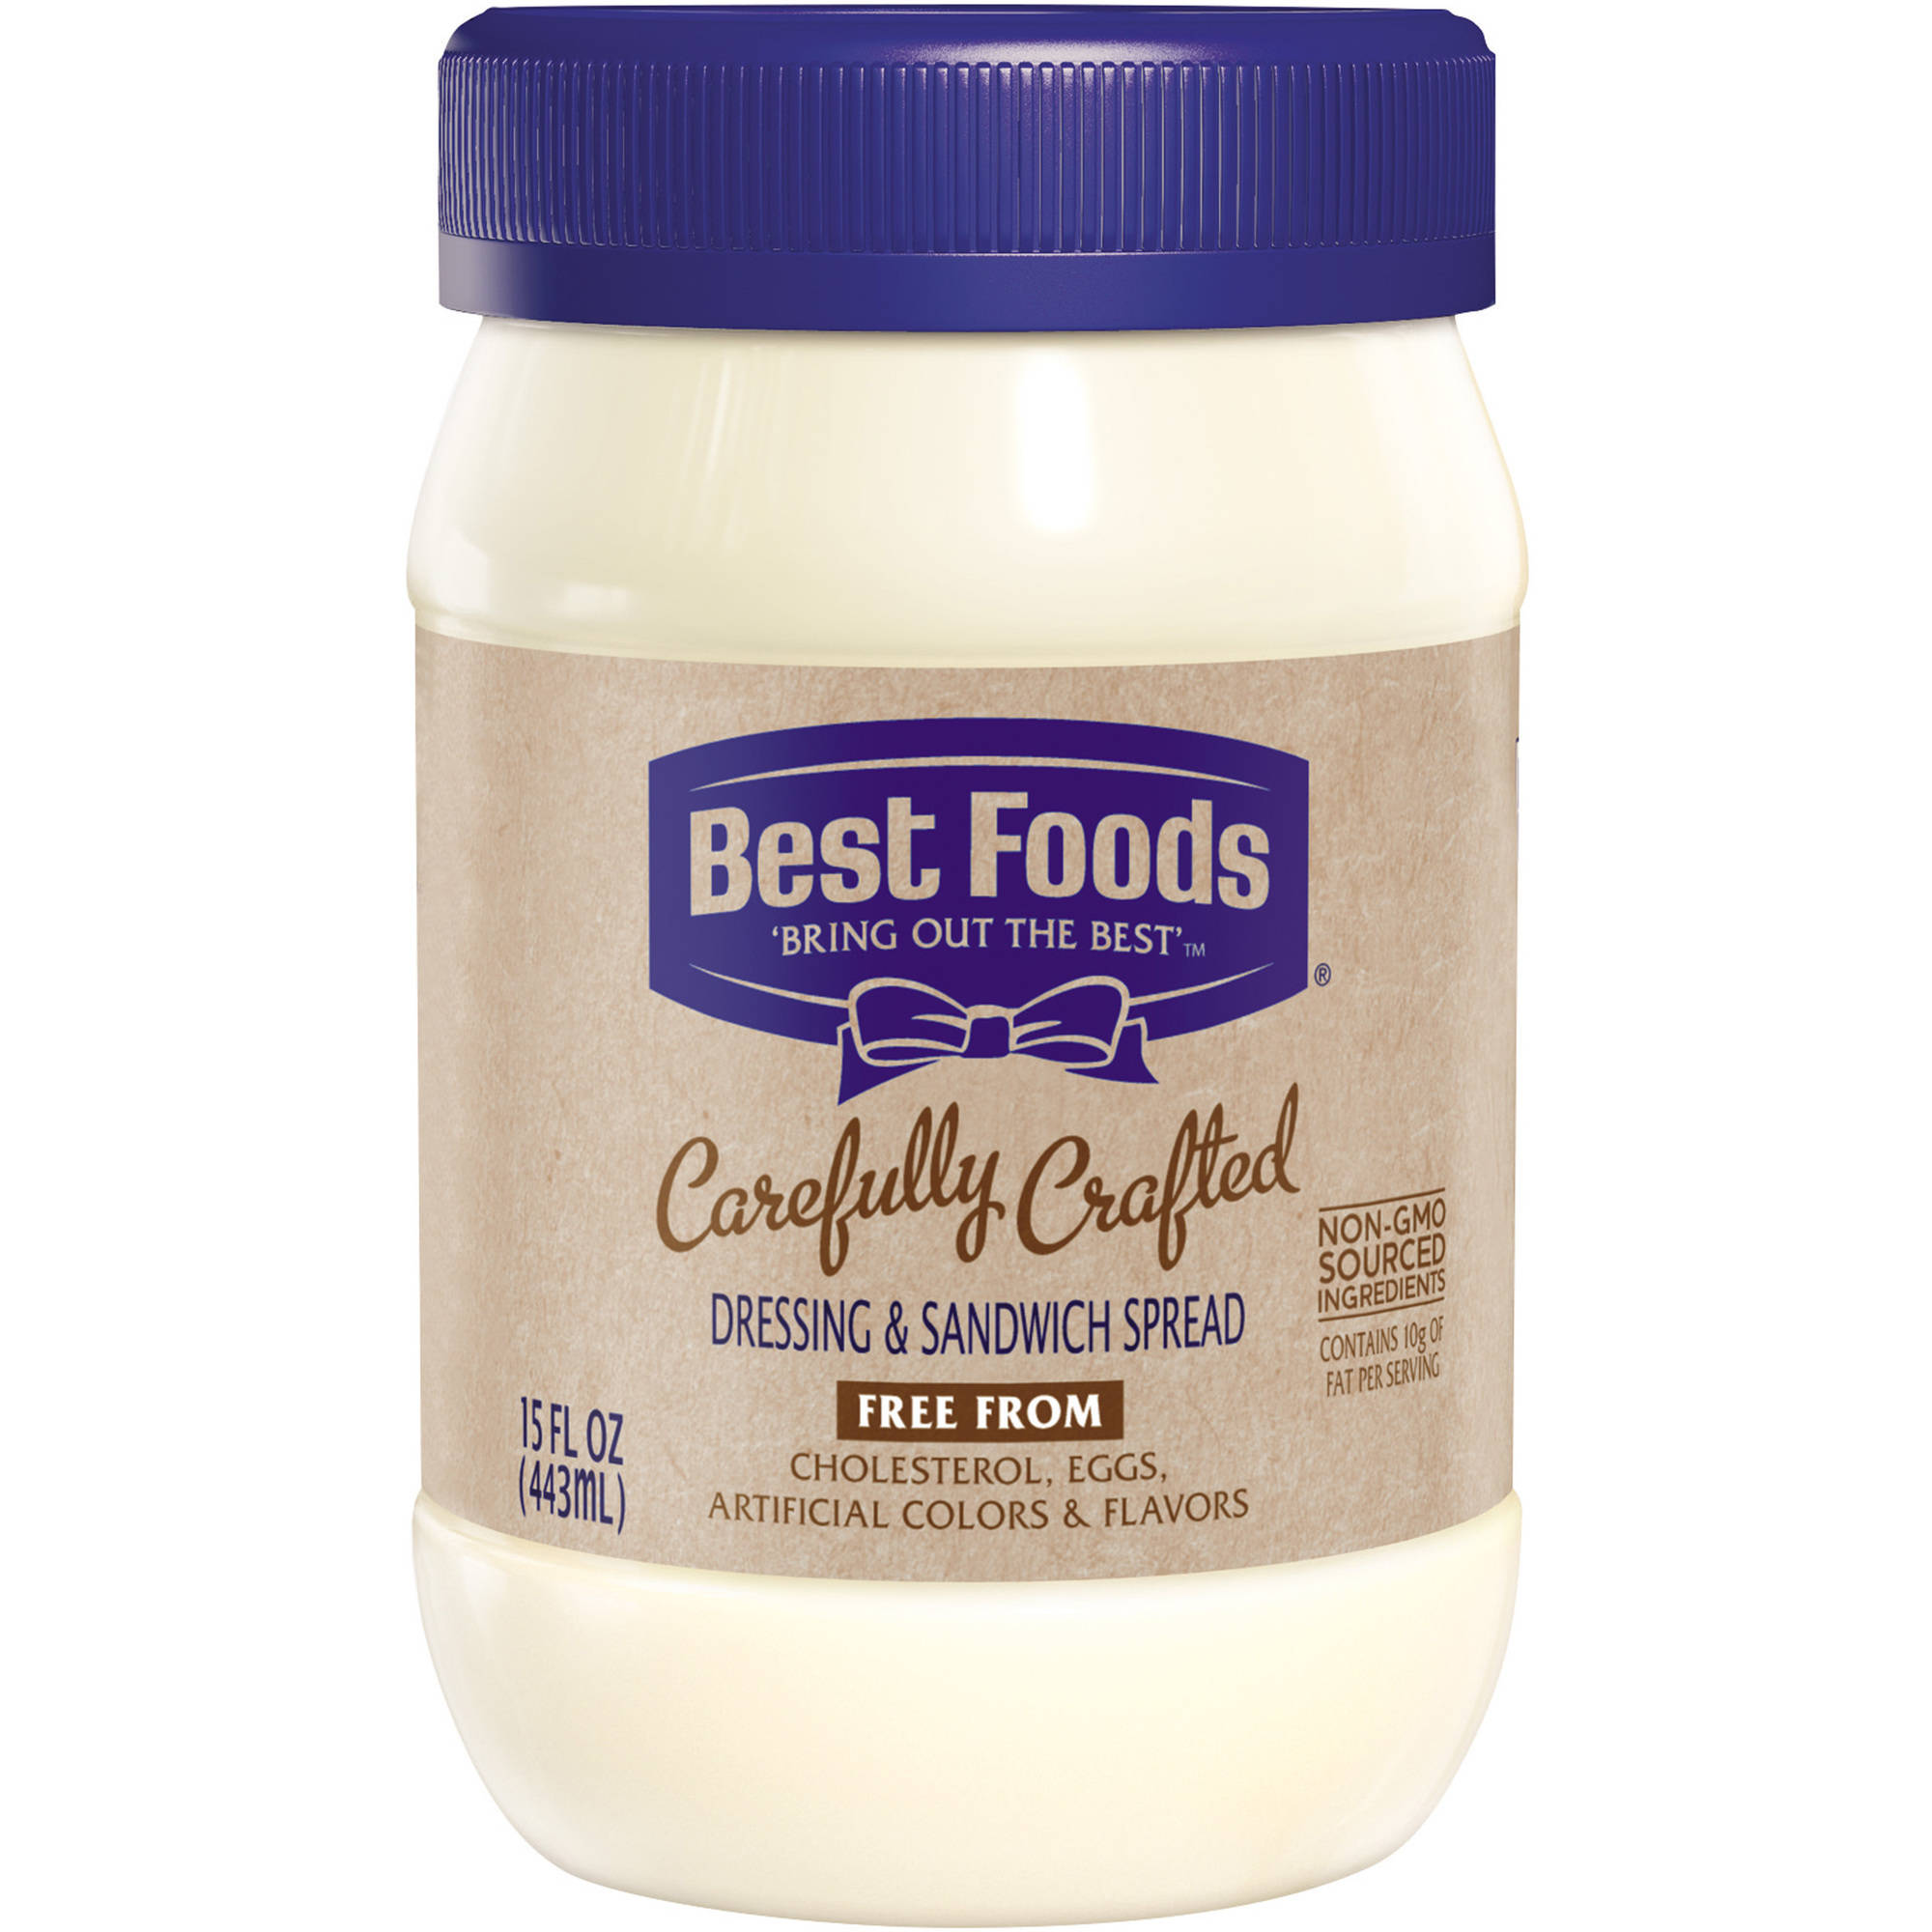 Best Foods Carefully Crafted Dressing and Sandwich Spread, 15 oz